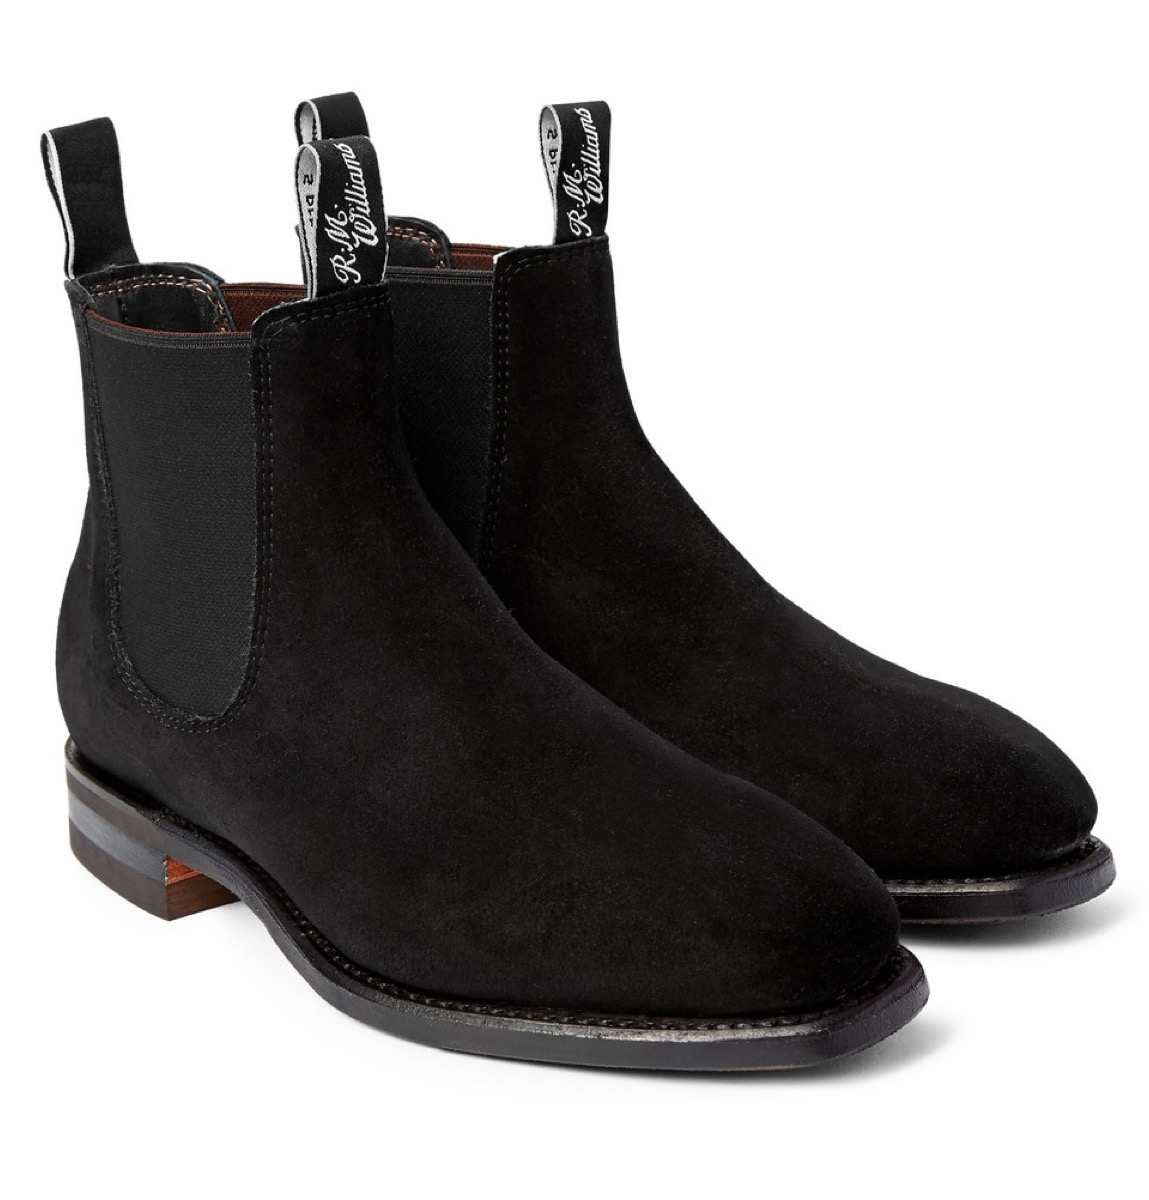 rm williams black suede chelsea boots